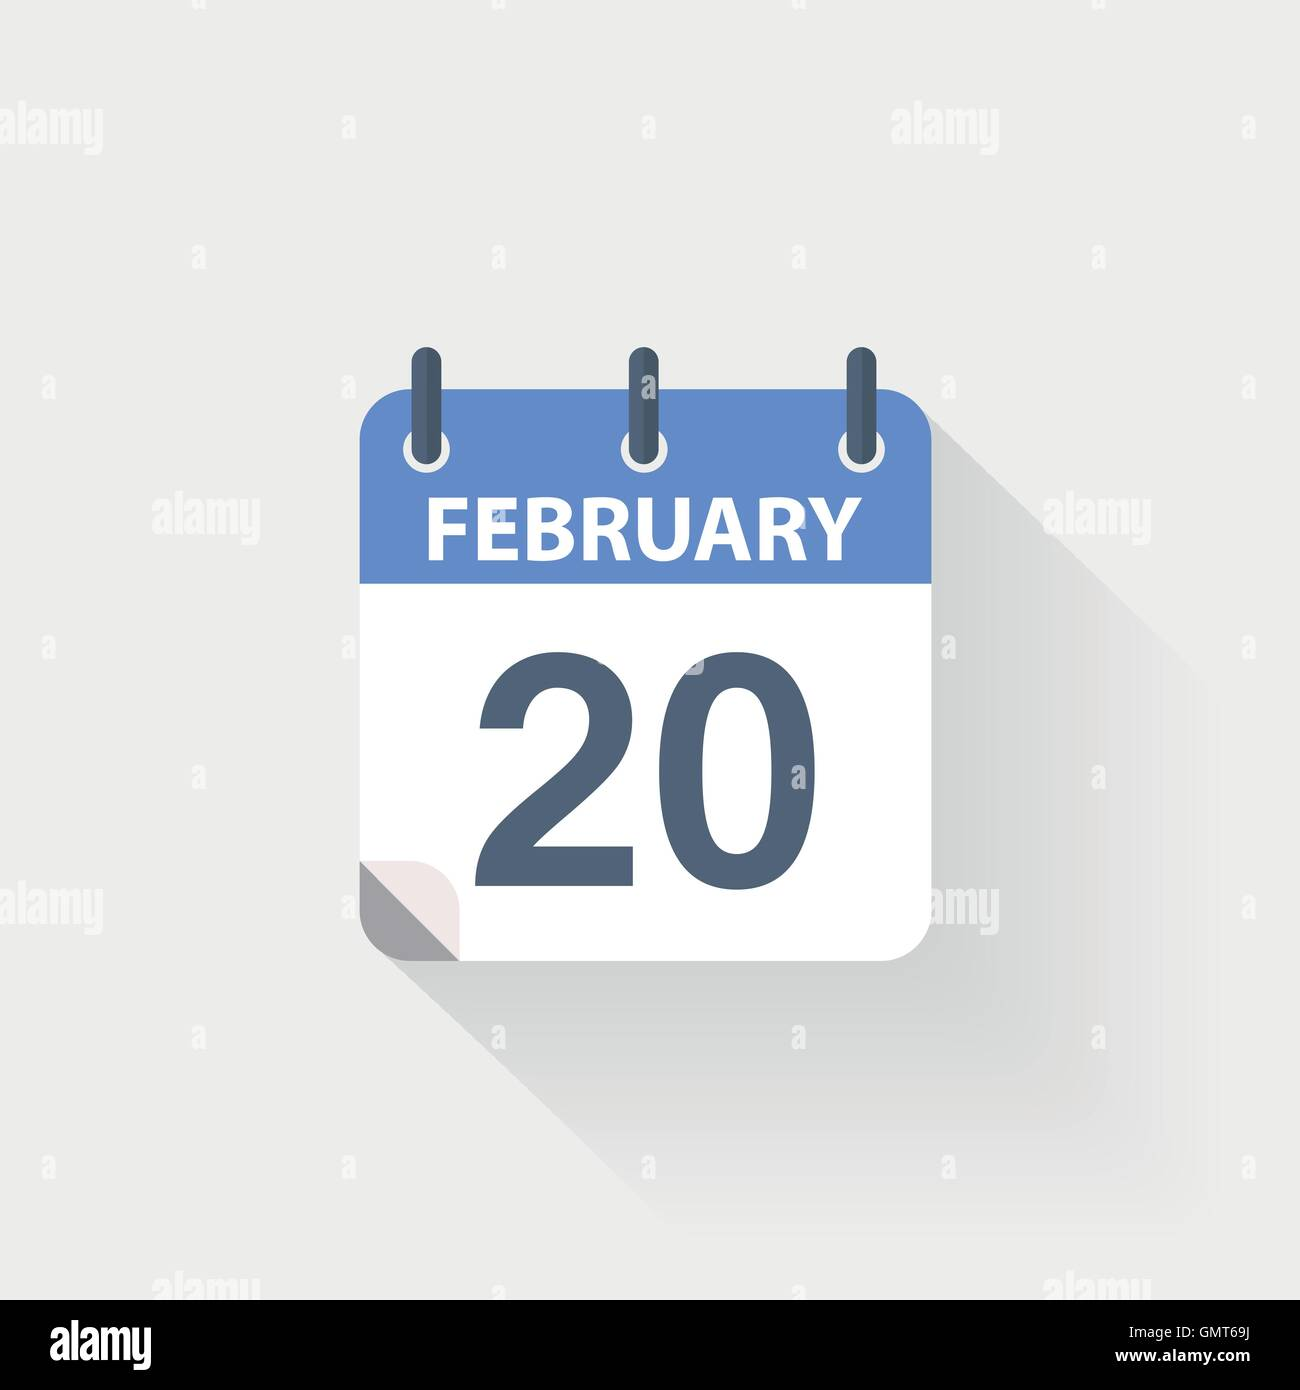 20 february calendar icon on grey background - Stock Vector